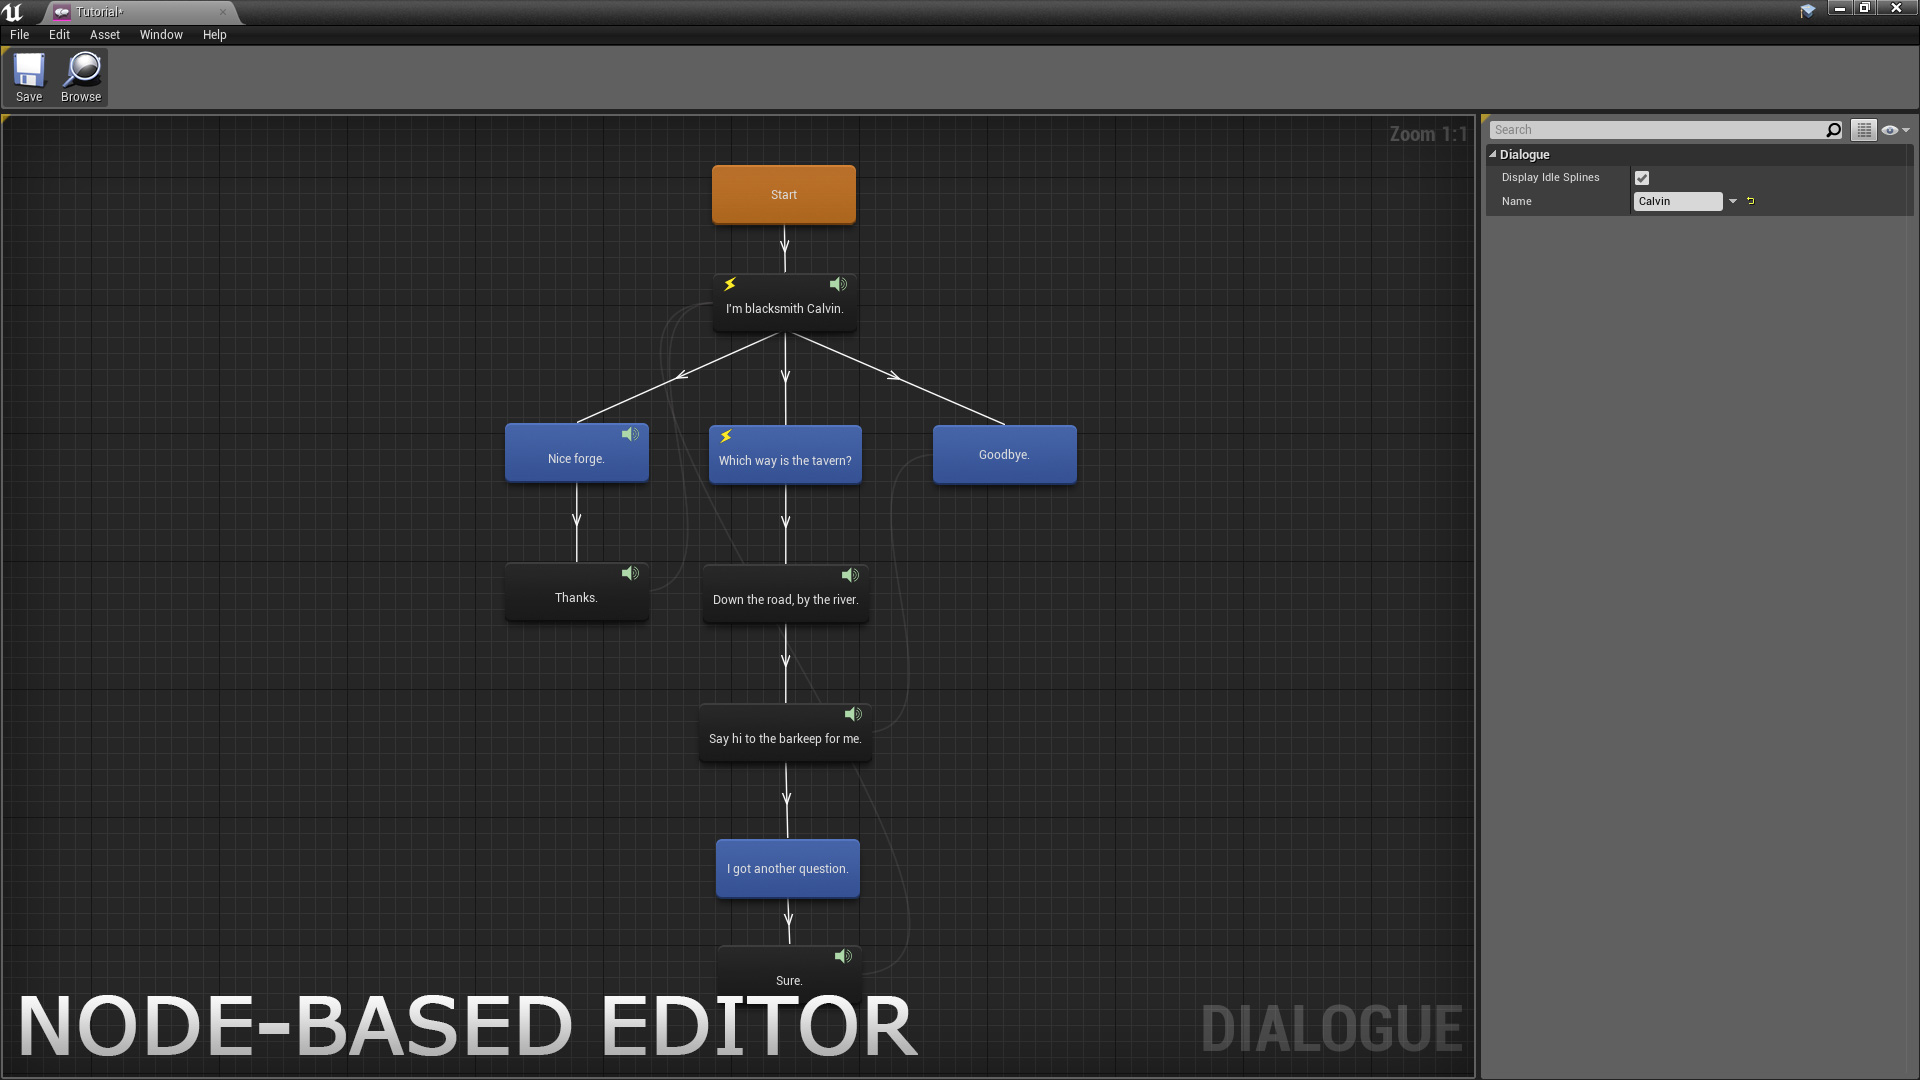 Dialogue Plugin by CodeSpartan in Code Plugins - UE4 Marketplace